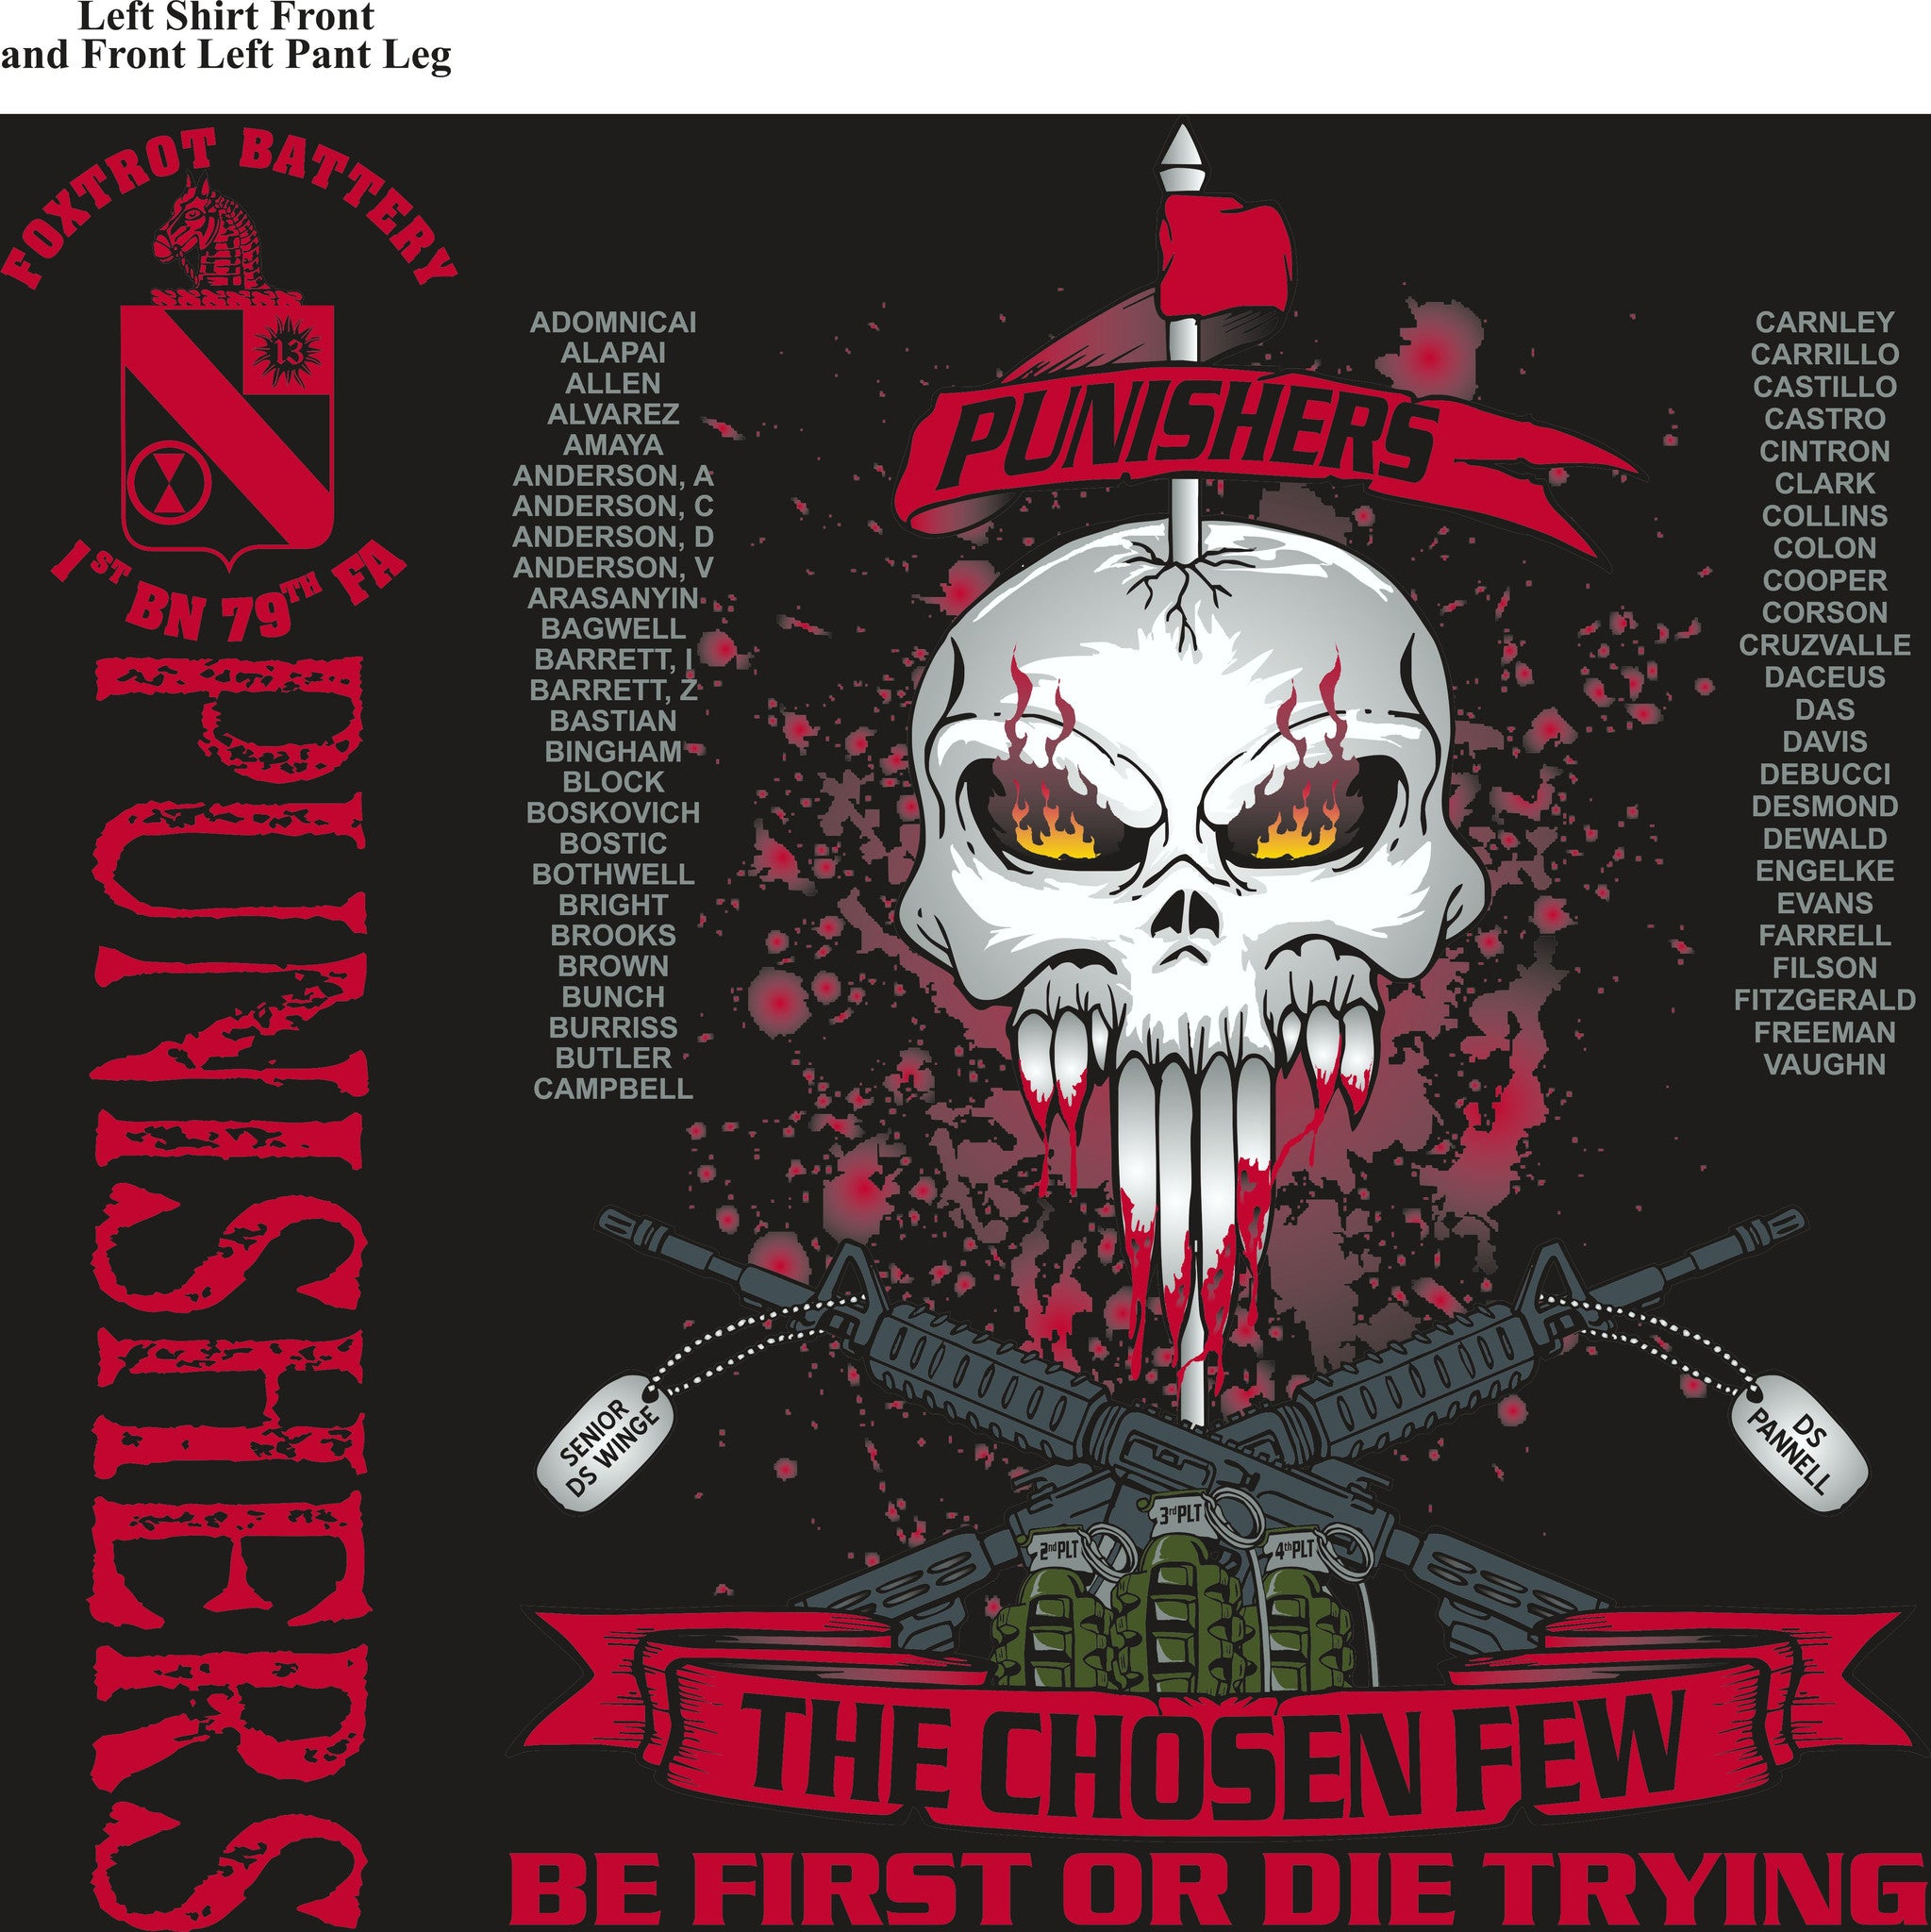 Platoon Shirts Fox 1st 79th PUNISHERS MAR 2015